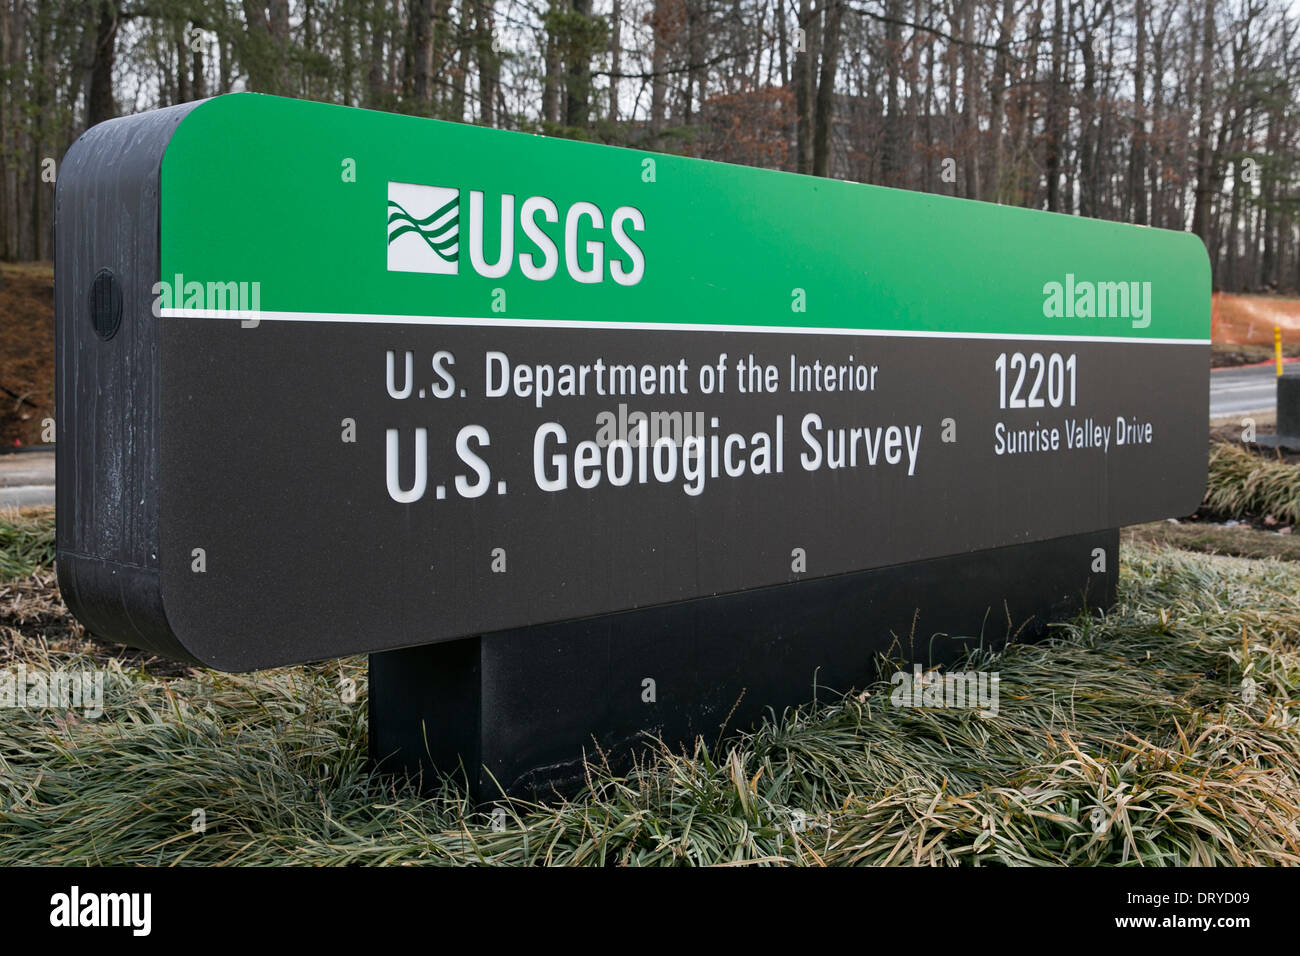 The headquarters of the U.S. Geological Survey in Reston, Virginia.  - Stock Image